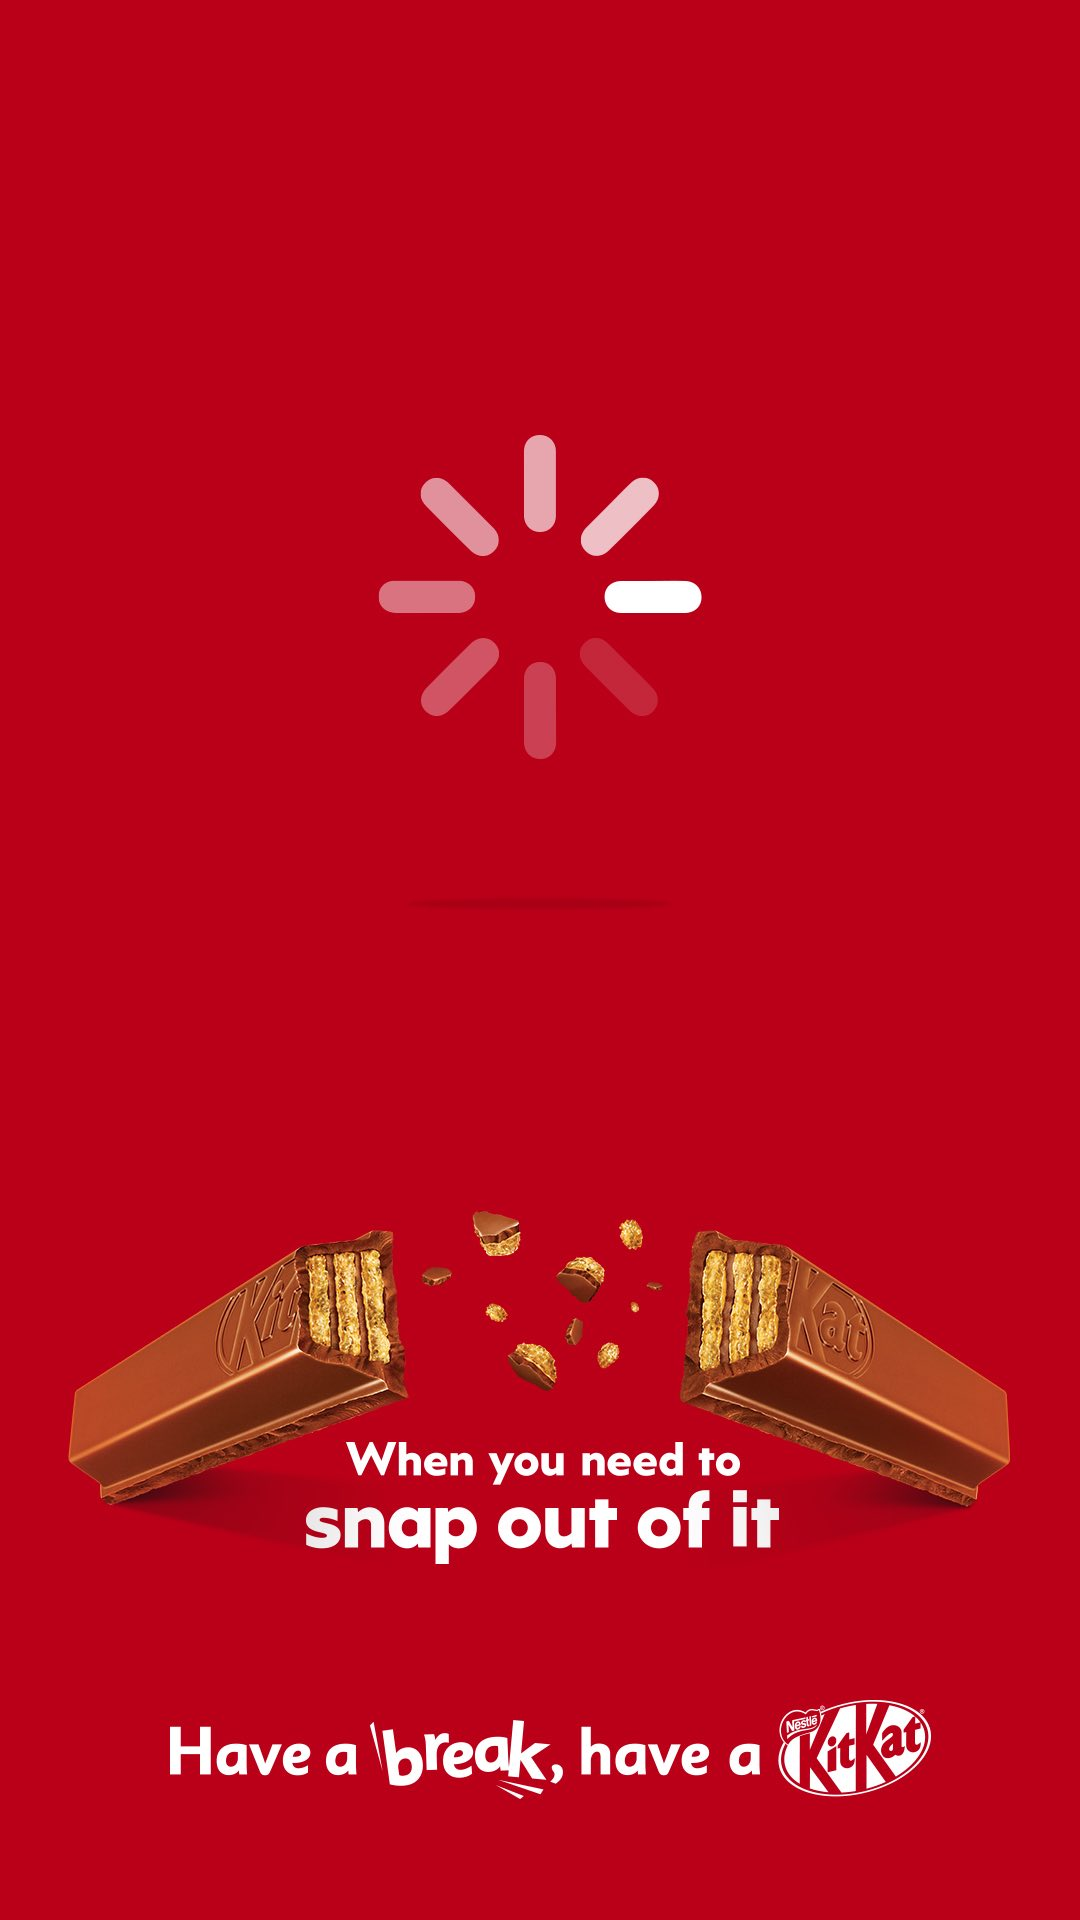 KitKat launches new 'Snap out of it' creative campaign via ...